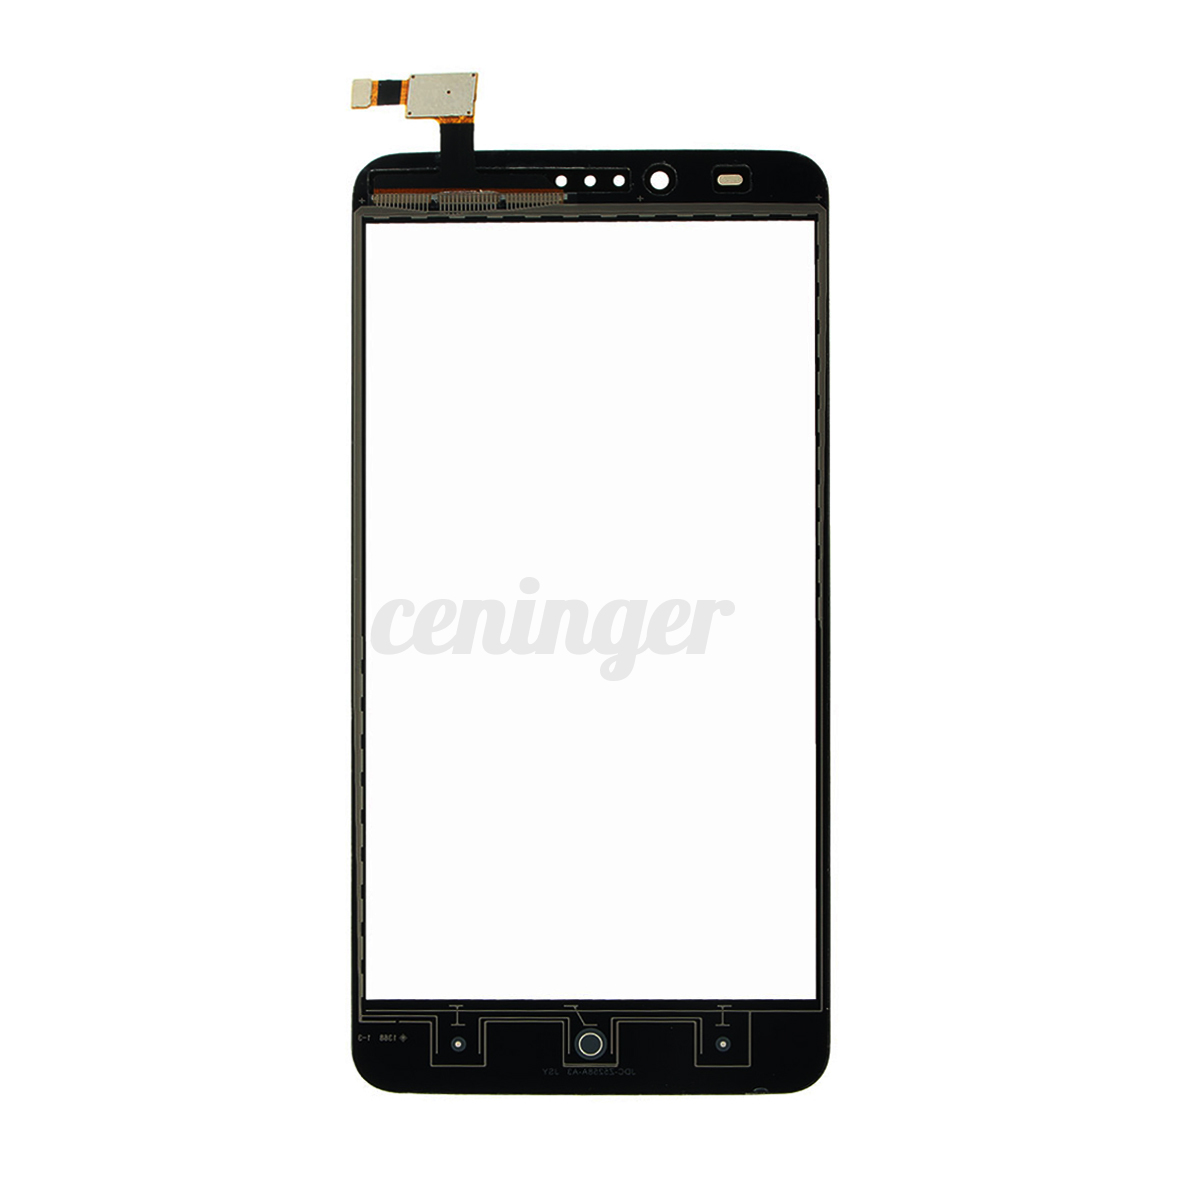 beneath how to replace zte zmax pro screen Are